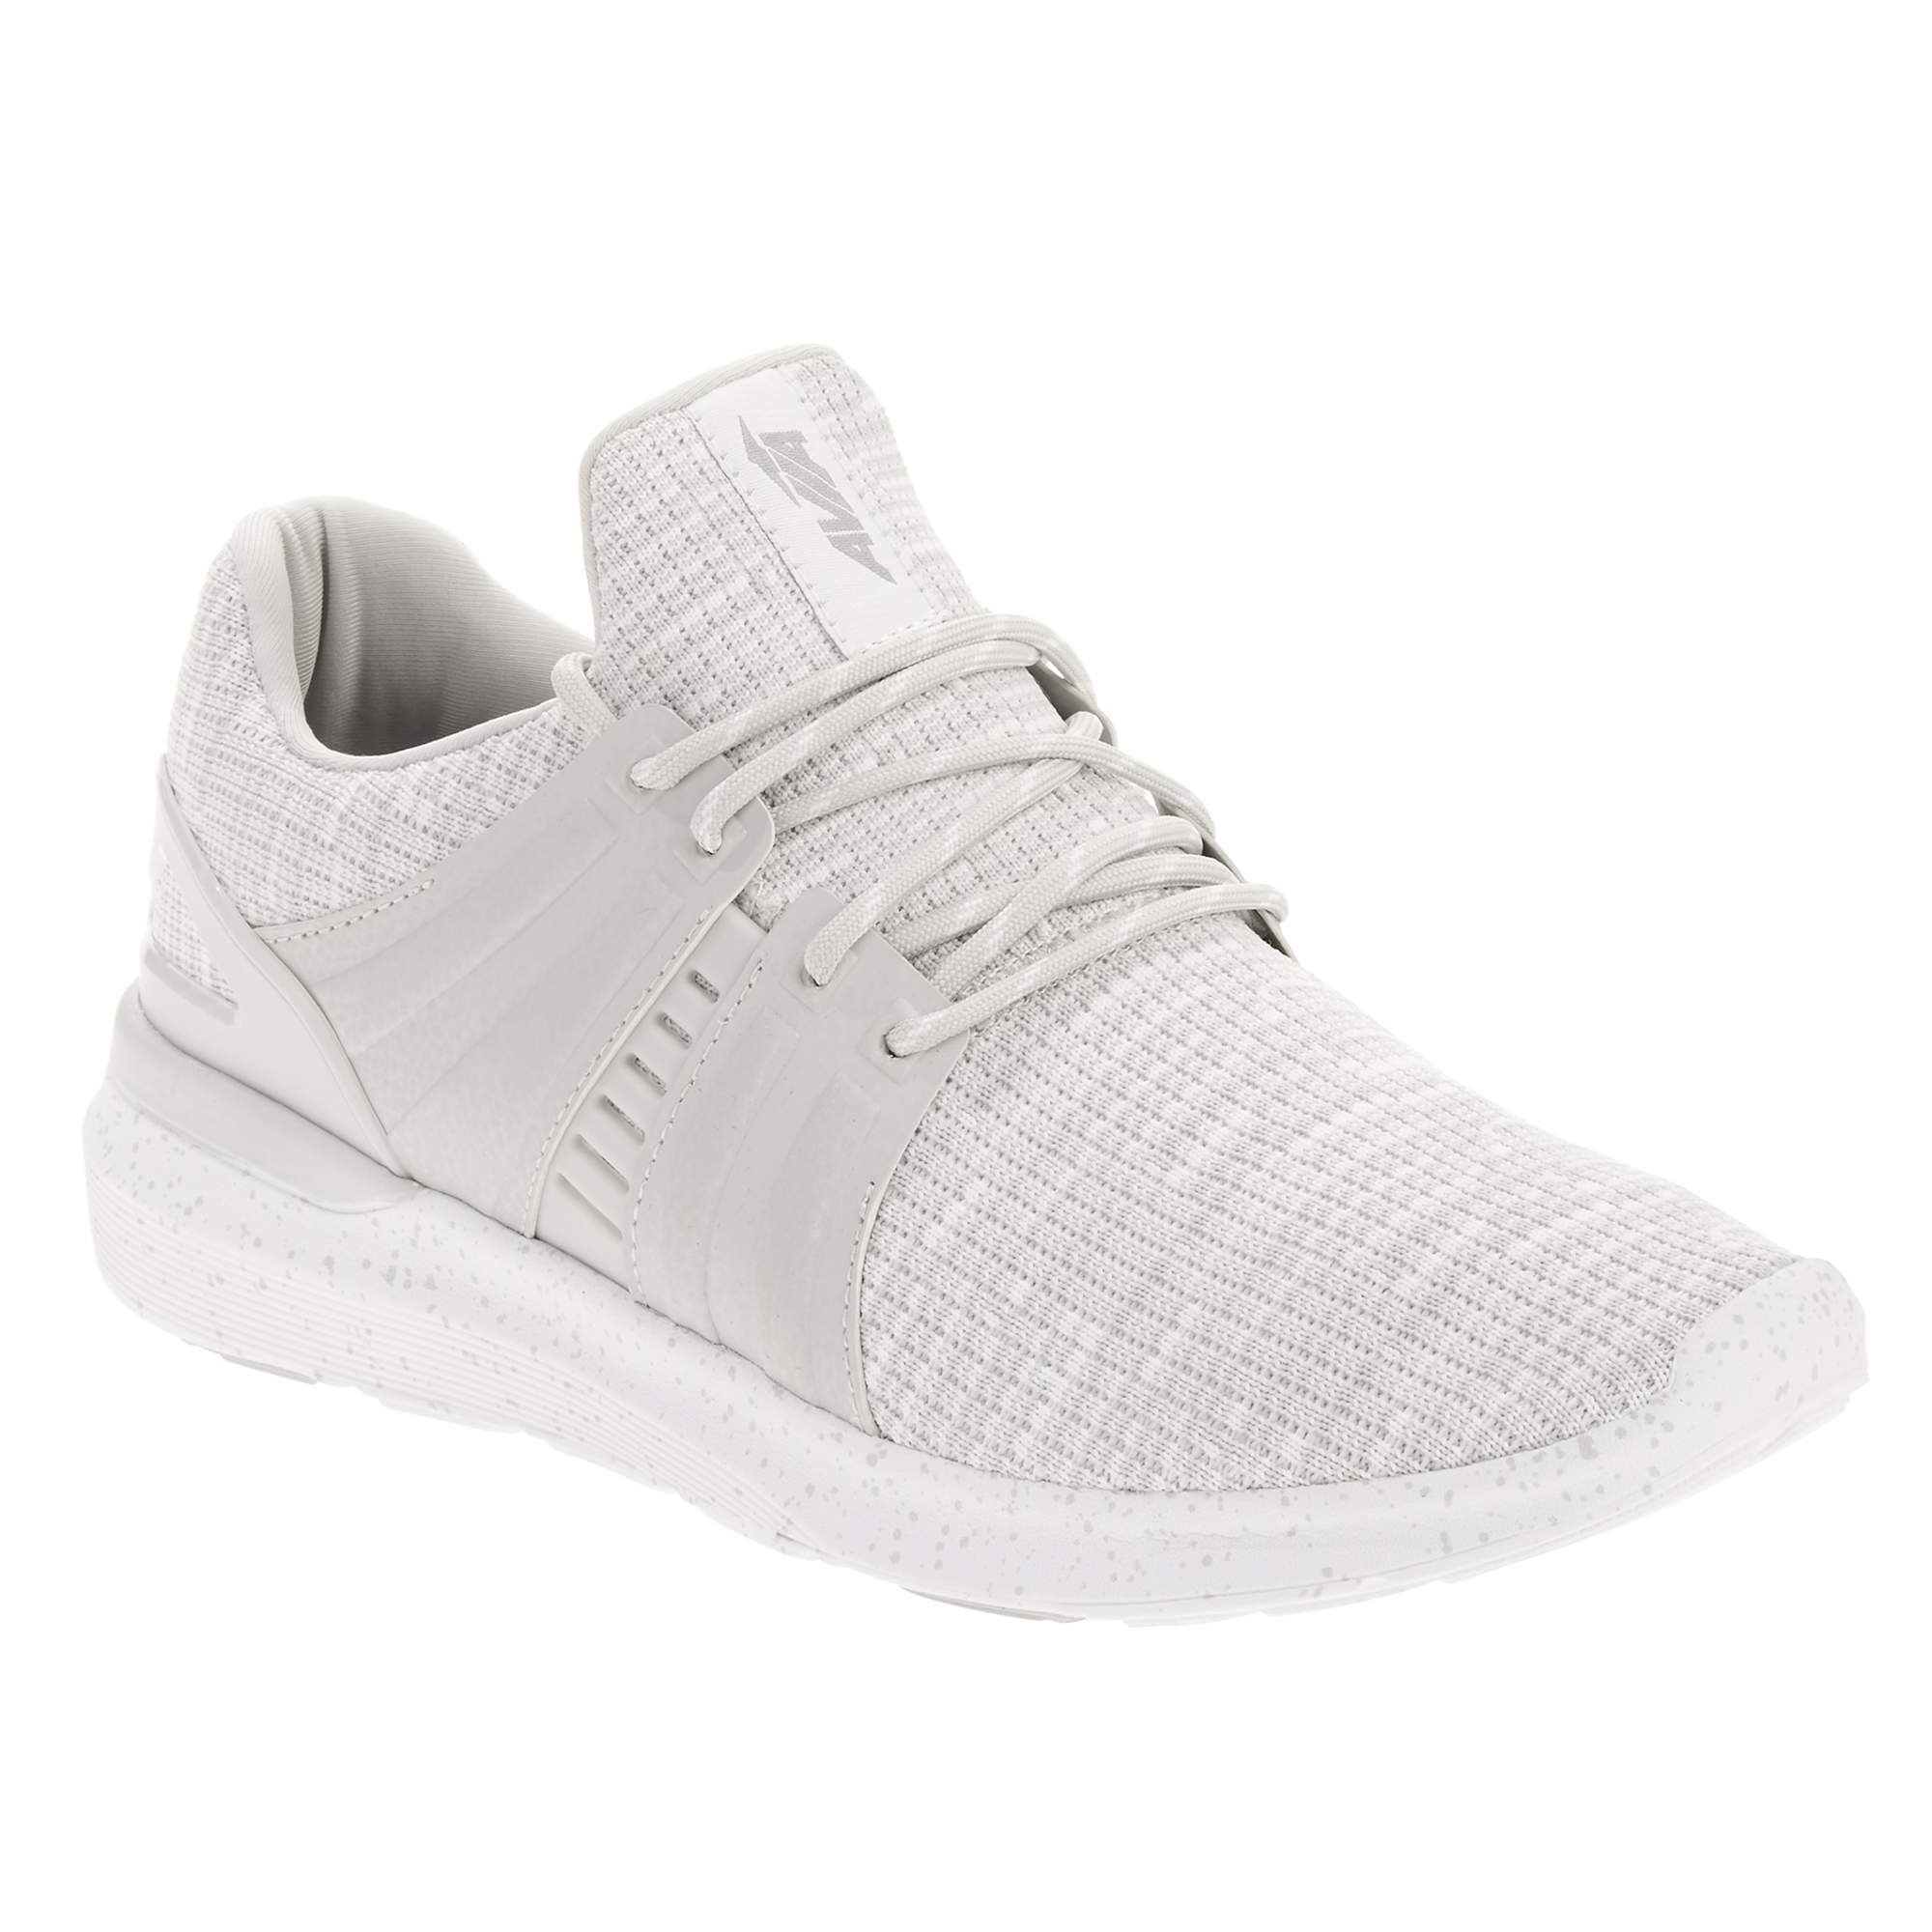 Avia Men's Caged Knit Athletic Shoes lightweight sneaker photo